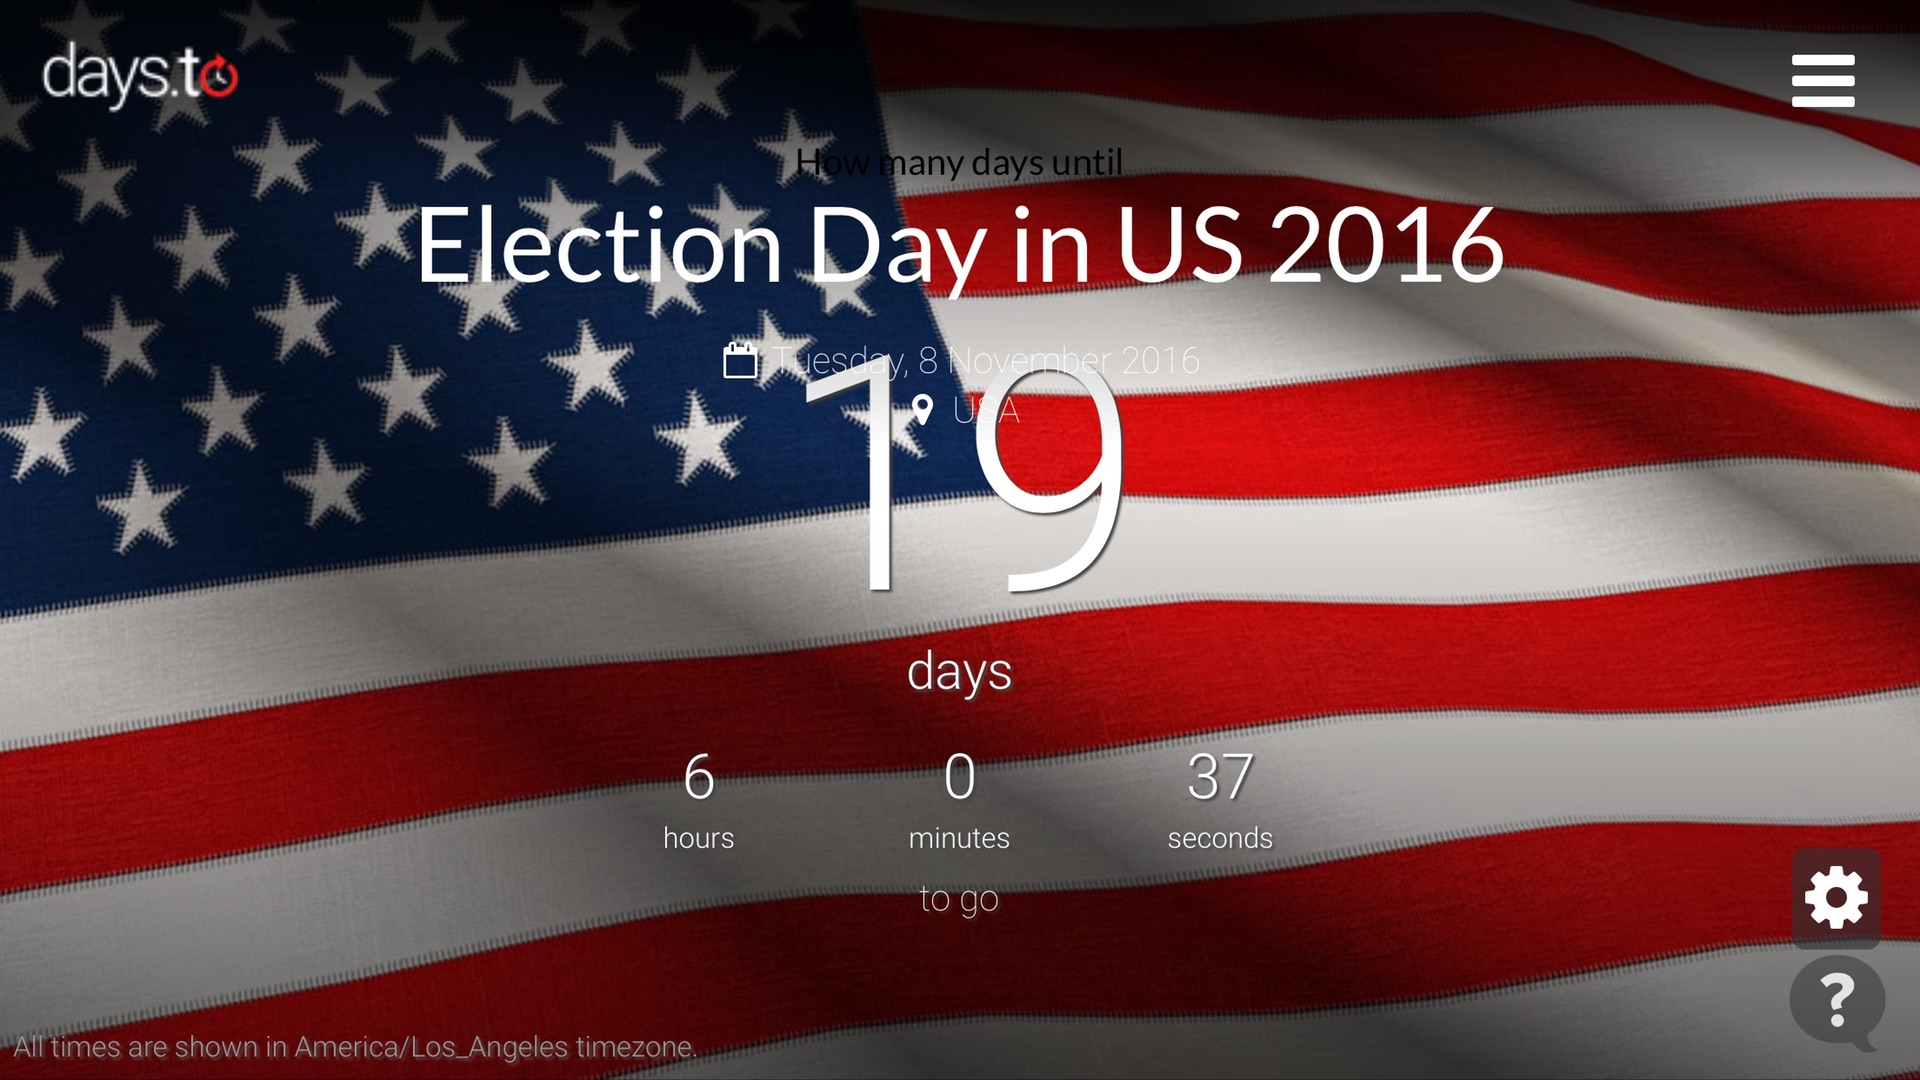 19-days-until-election-day